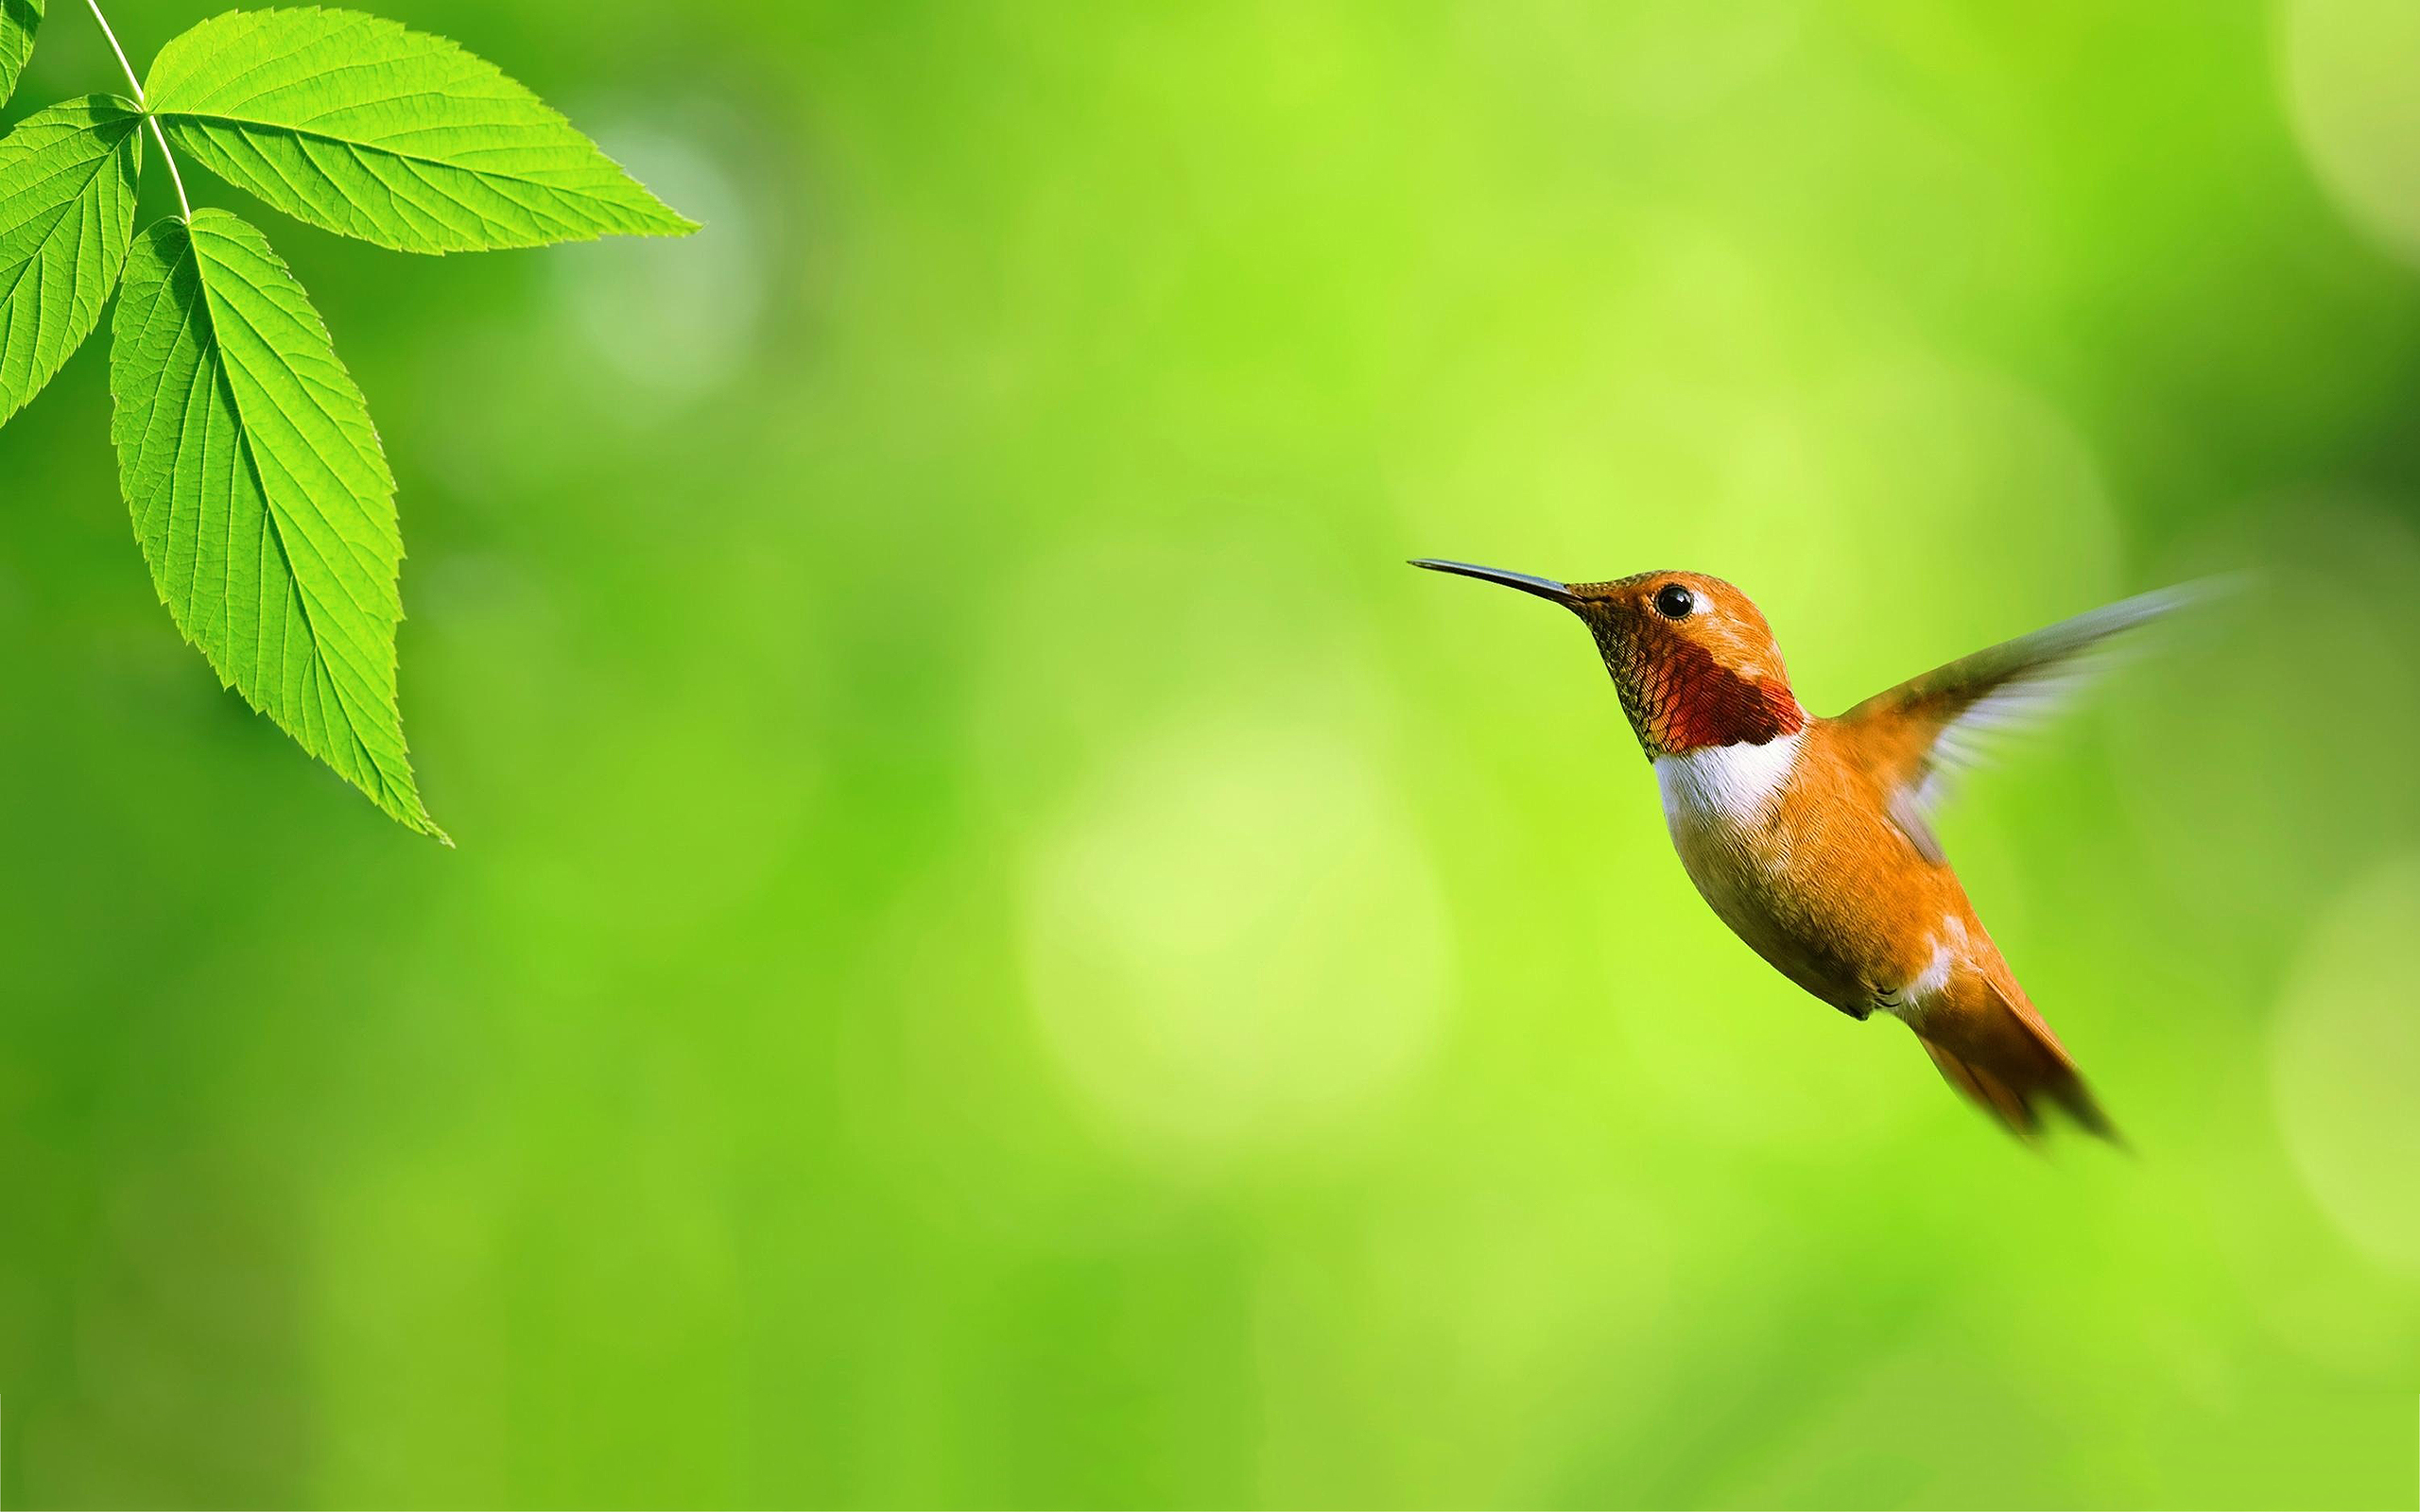 Download Free Hummingbird Wallpapers: Hummingbird Wallpaper Nature - HD Desktop Wallpapers